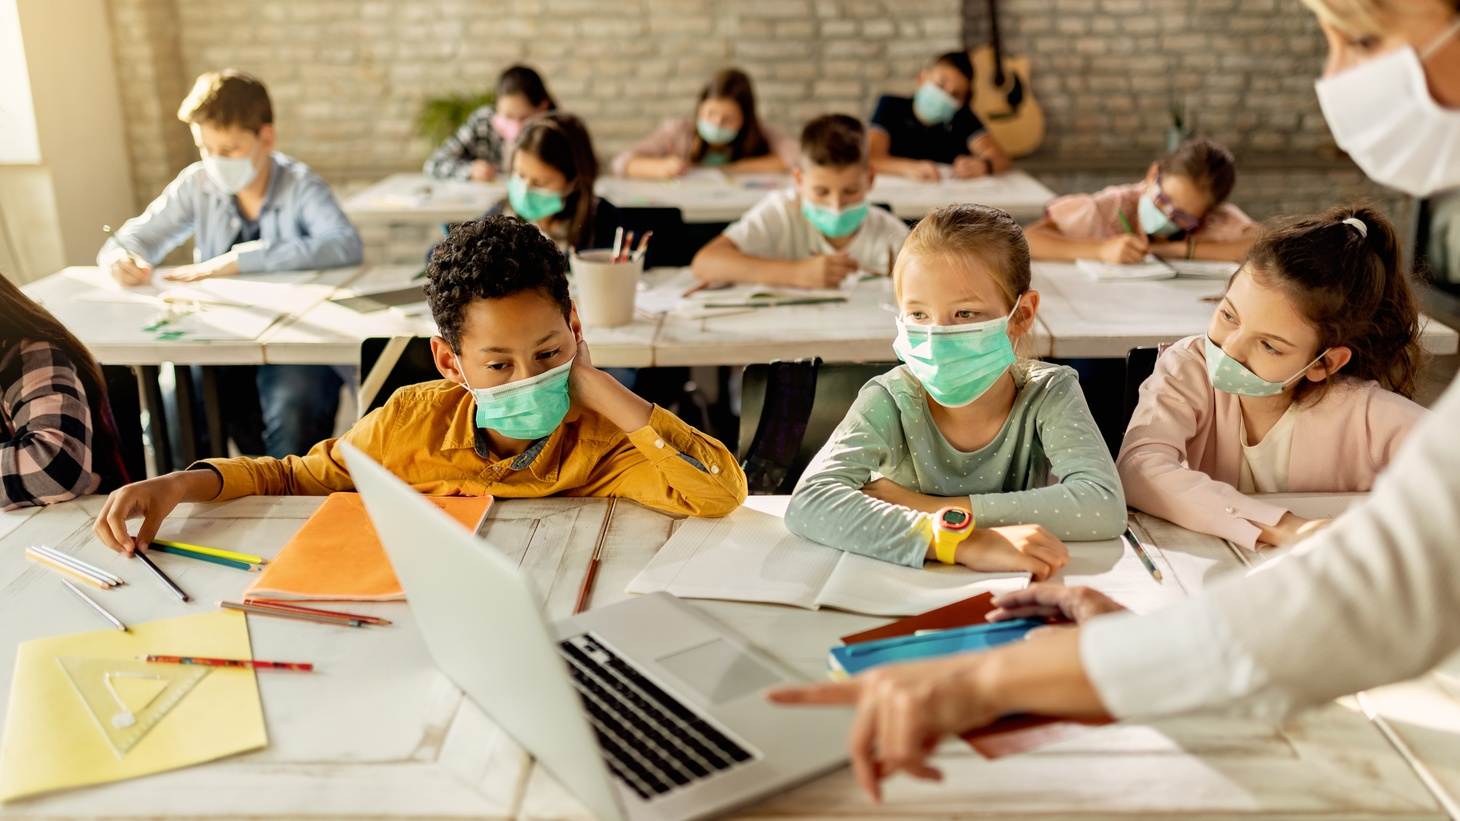 """""""While our kids are being quarantined away from their friends for their own safety, kids are suffering. And so we are looking forward to kids going back safely with the recommendation of primary care physicians and pediatricians and masking up, so that kids' mental health needs can be served,"""" says clinical psychologist Alduan Tartt."""